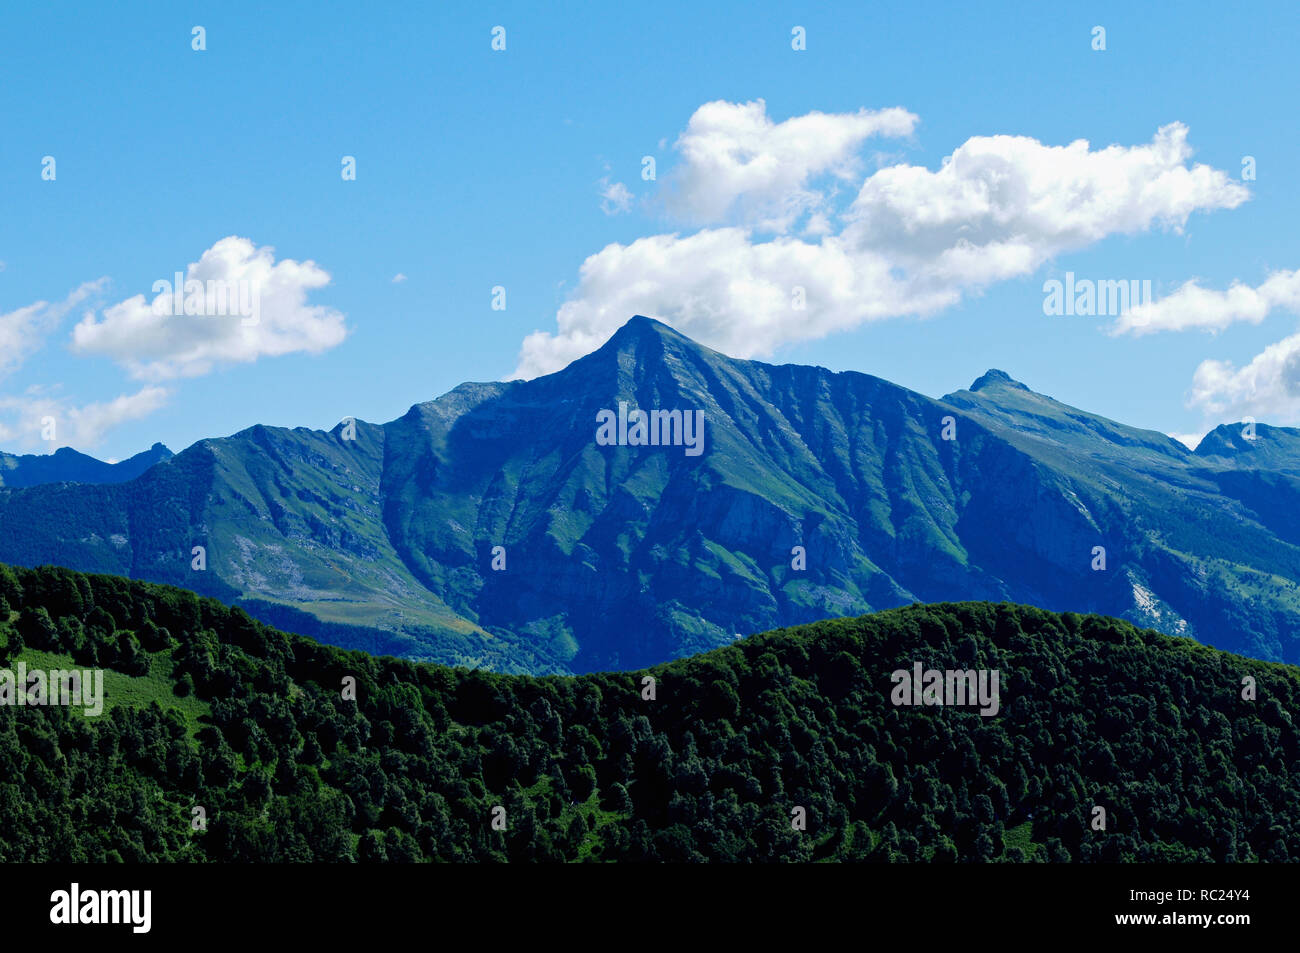 South Switzerland: Piz/Mount Vogorno at the entrance of the Verzasca valley in Ticino - Stock Image